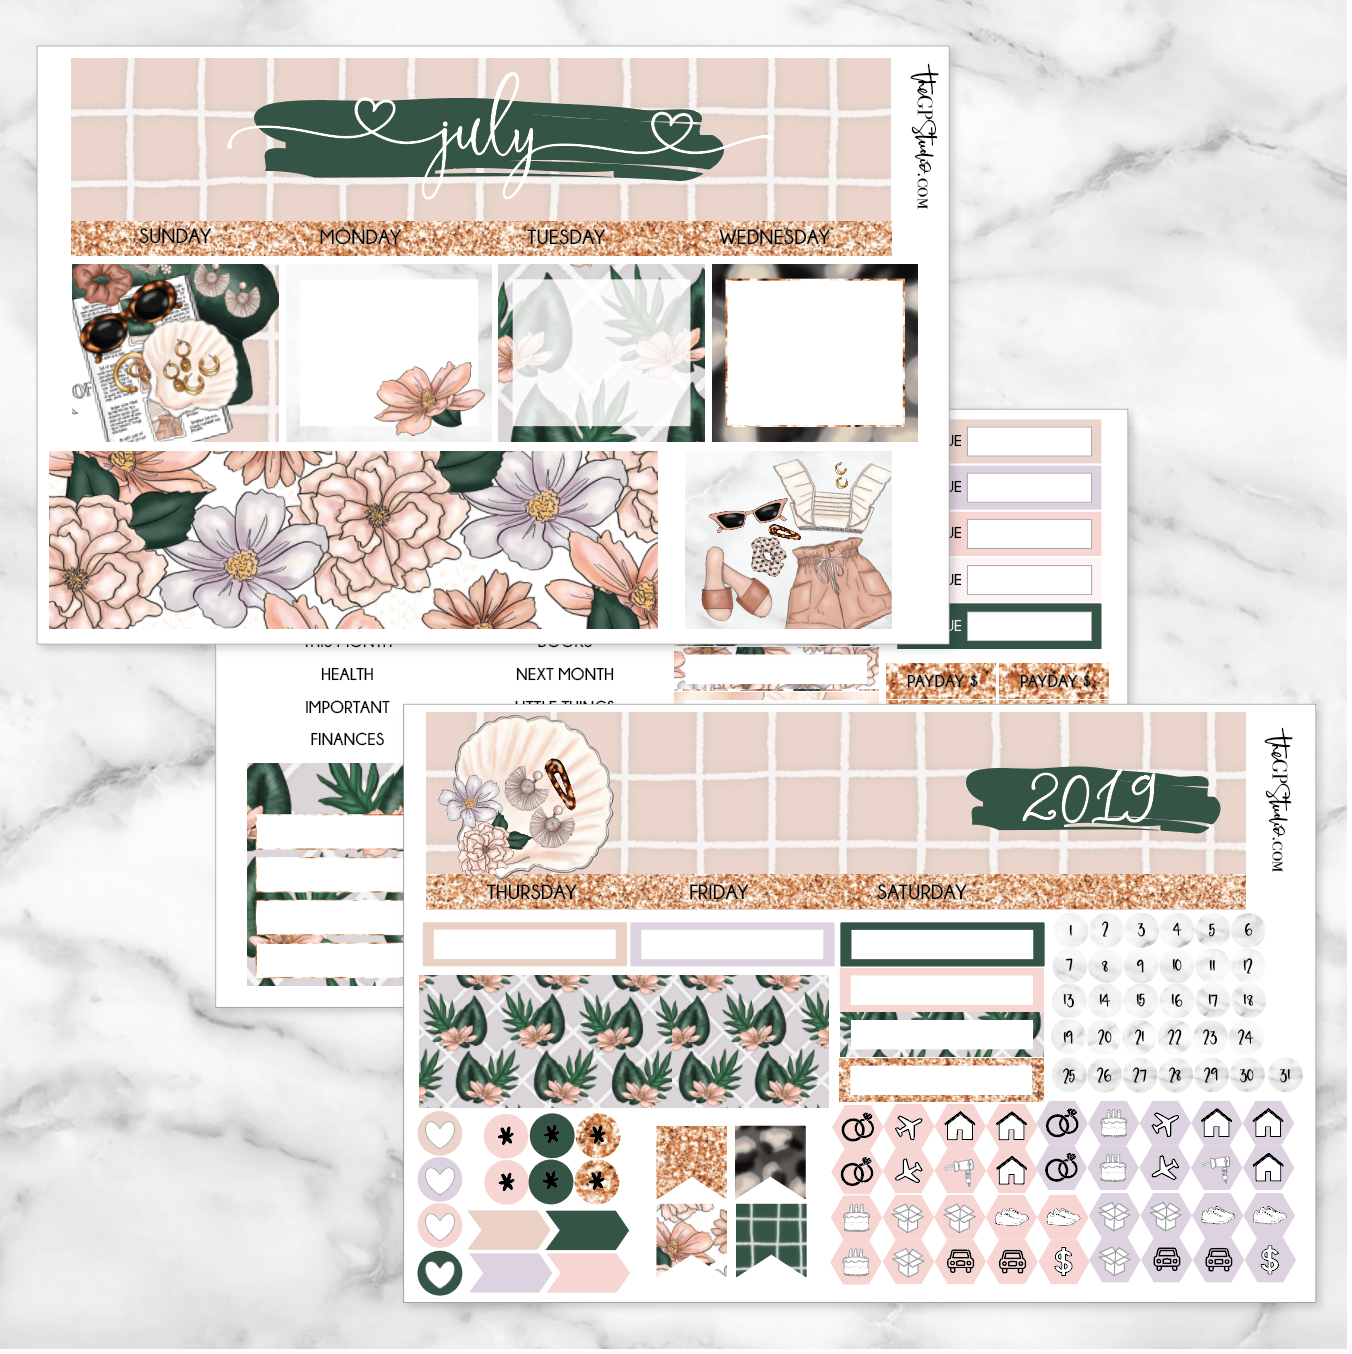 JULY Monthly View Sticker Kit Erin Condren Size-The GP Studio